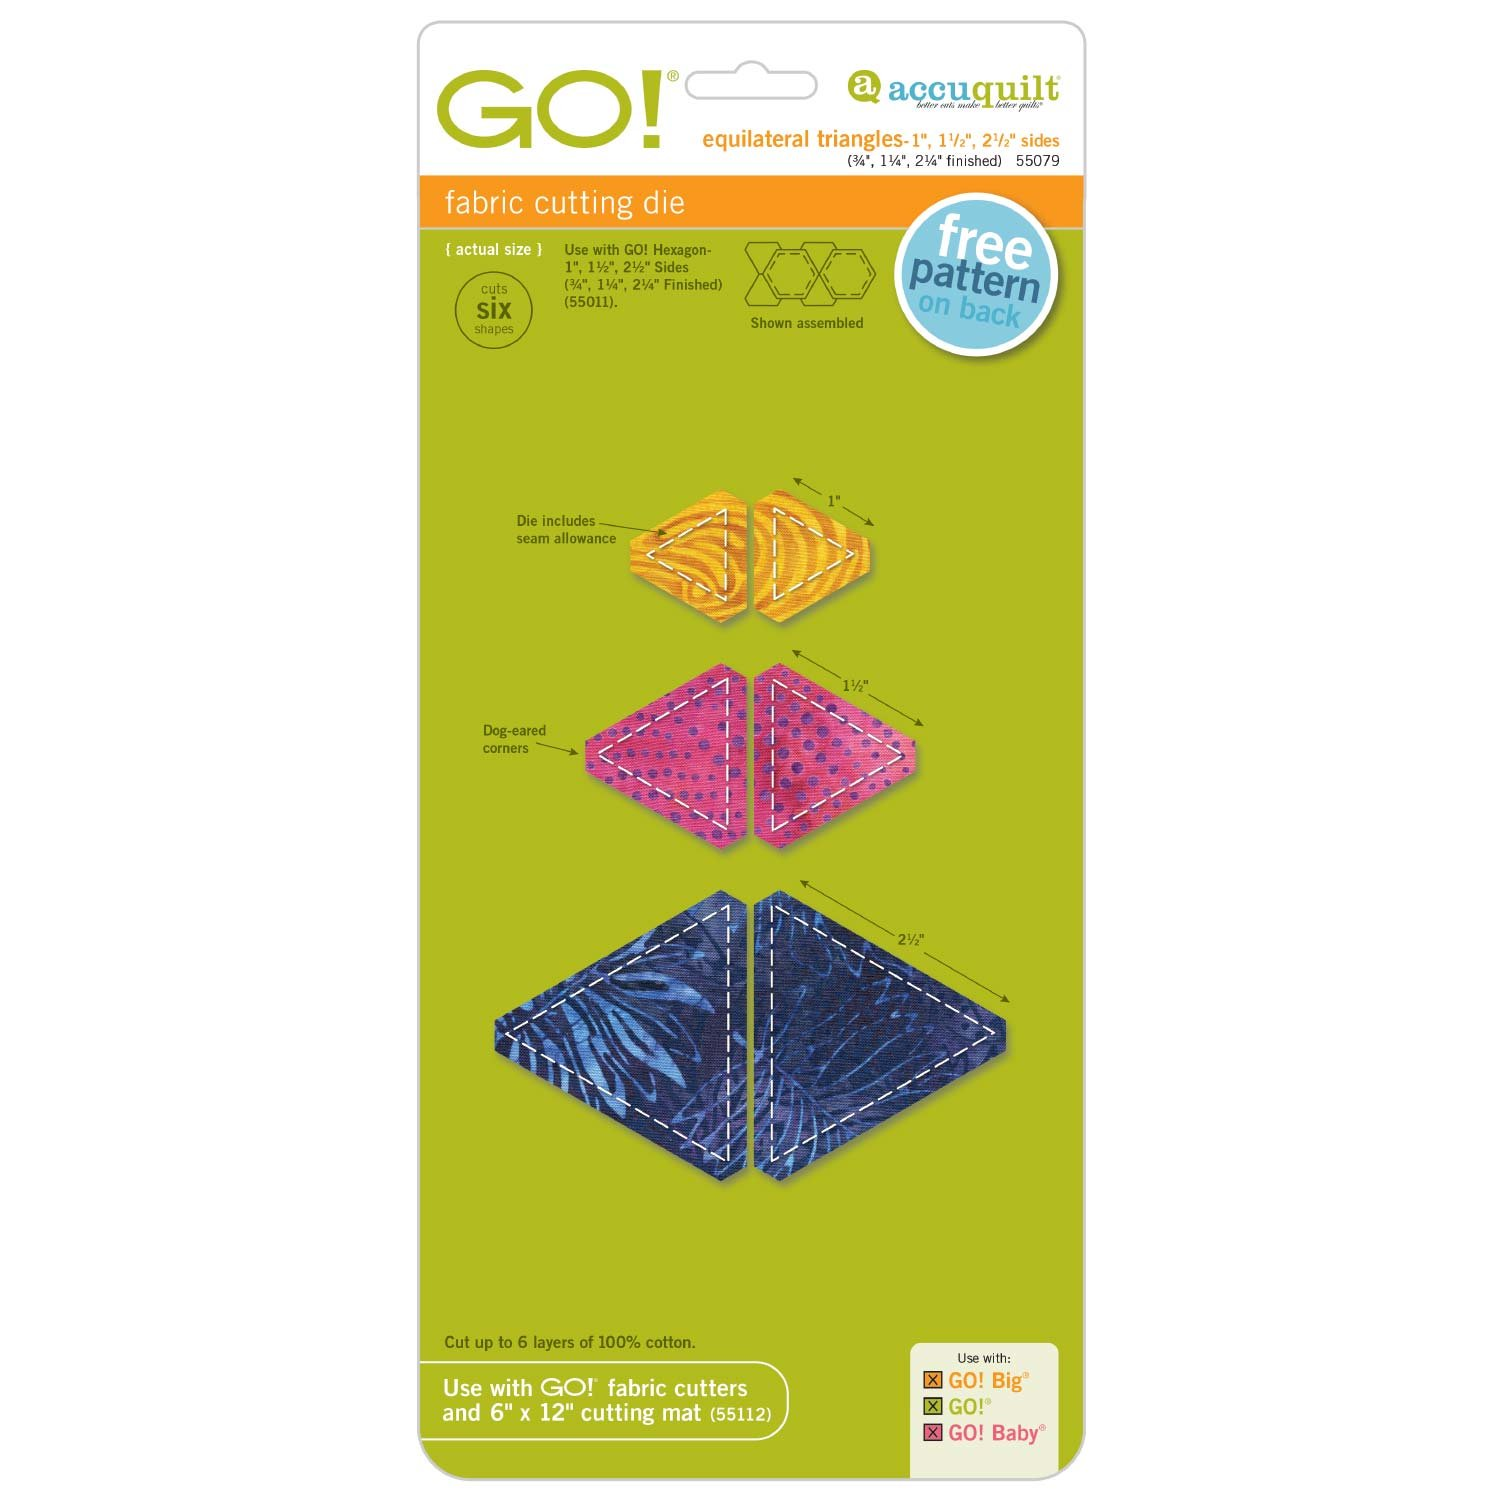 GO! Equilateral Triangles (3/4, 1¼ 2¼ Finished Sides)